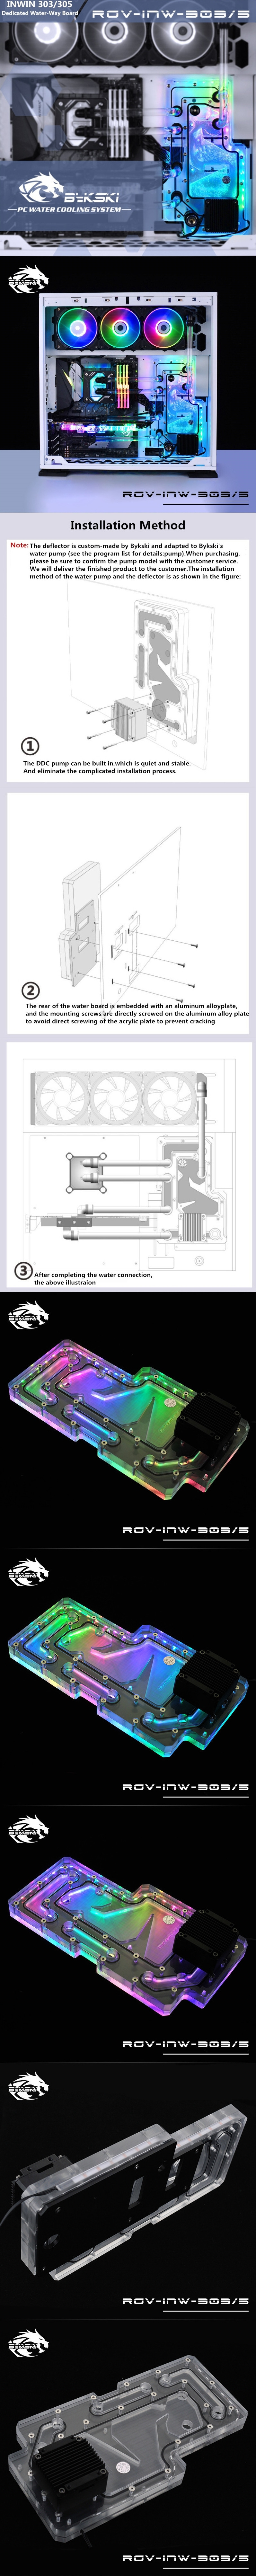 A large marketing image providing additional information about the product Bykski InWin 303 & 305 Case RBW Water Distribution Board - Additional alt info not provided